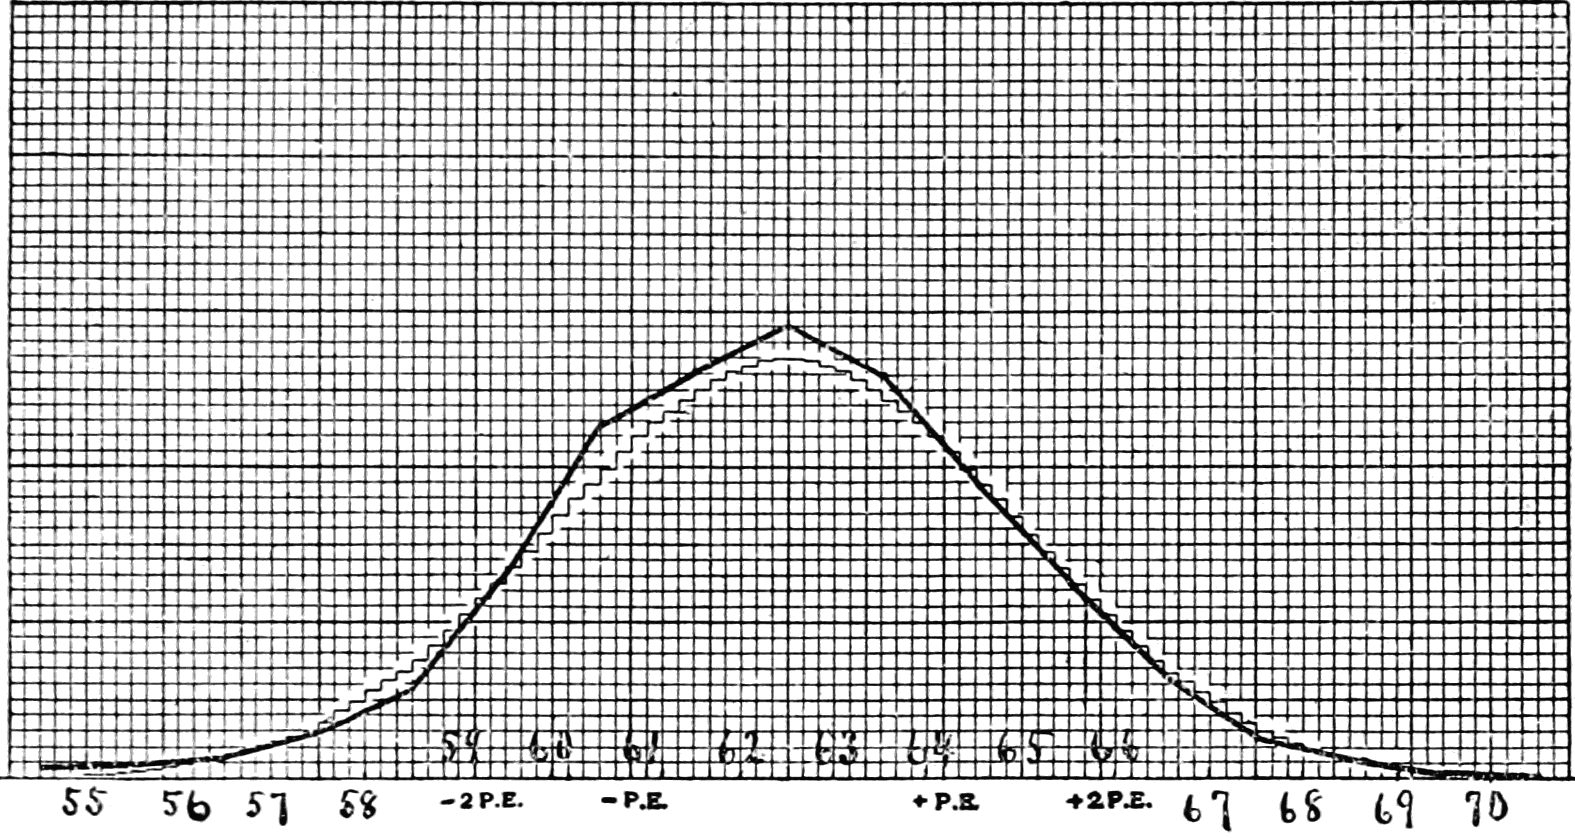 PSM V66 D375 Graph of stature of women measured in inches.png